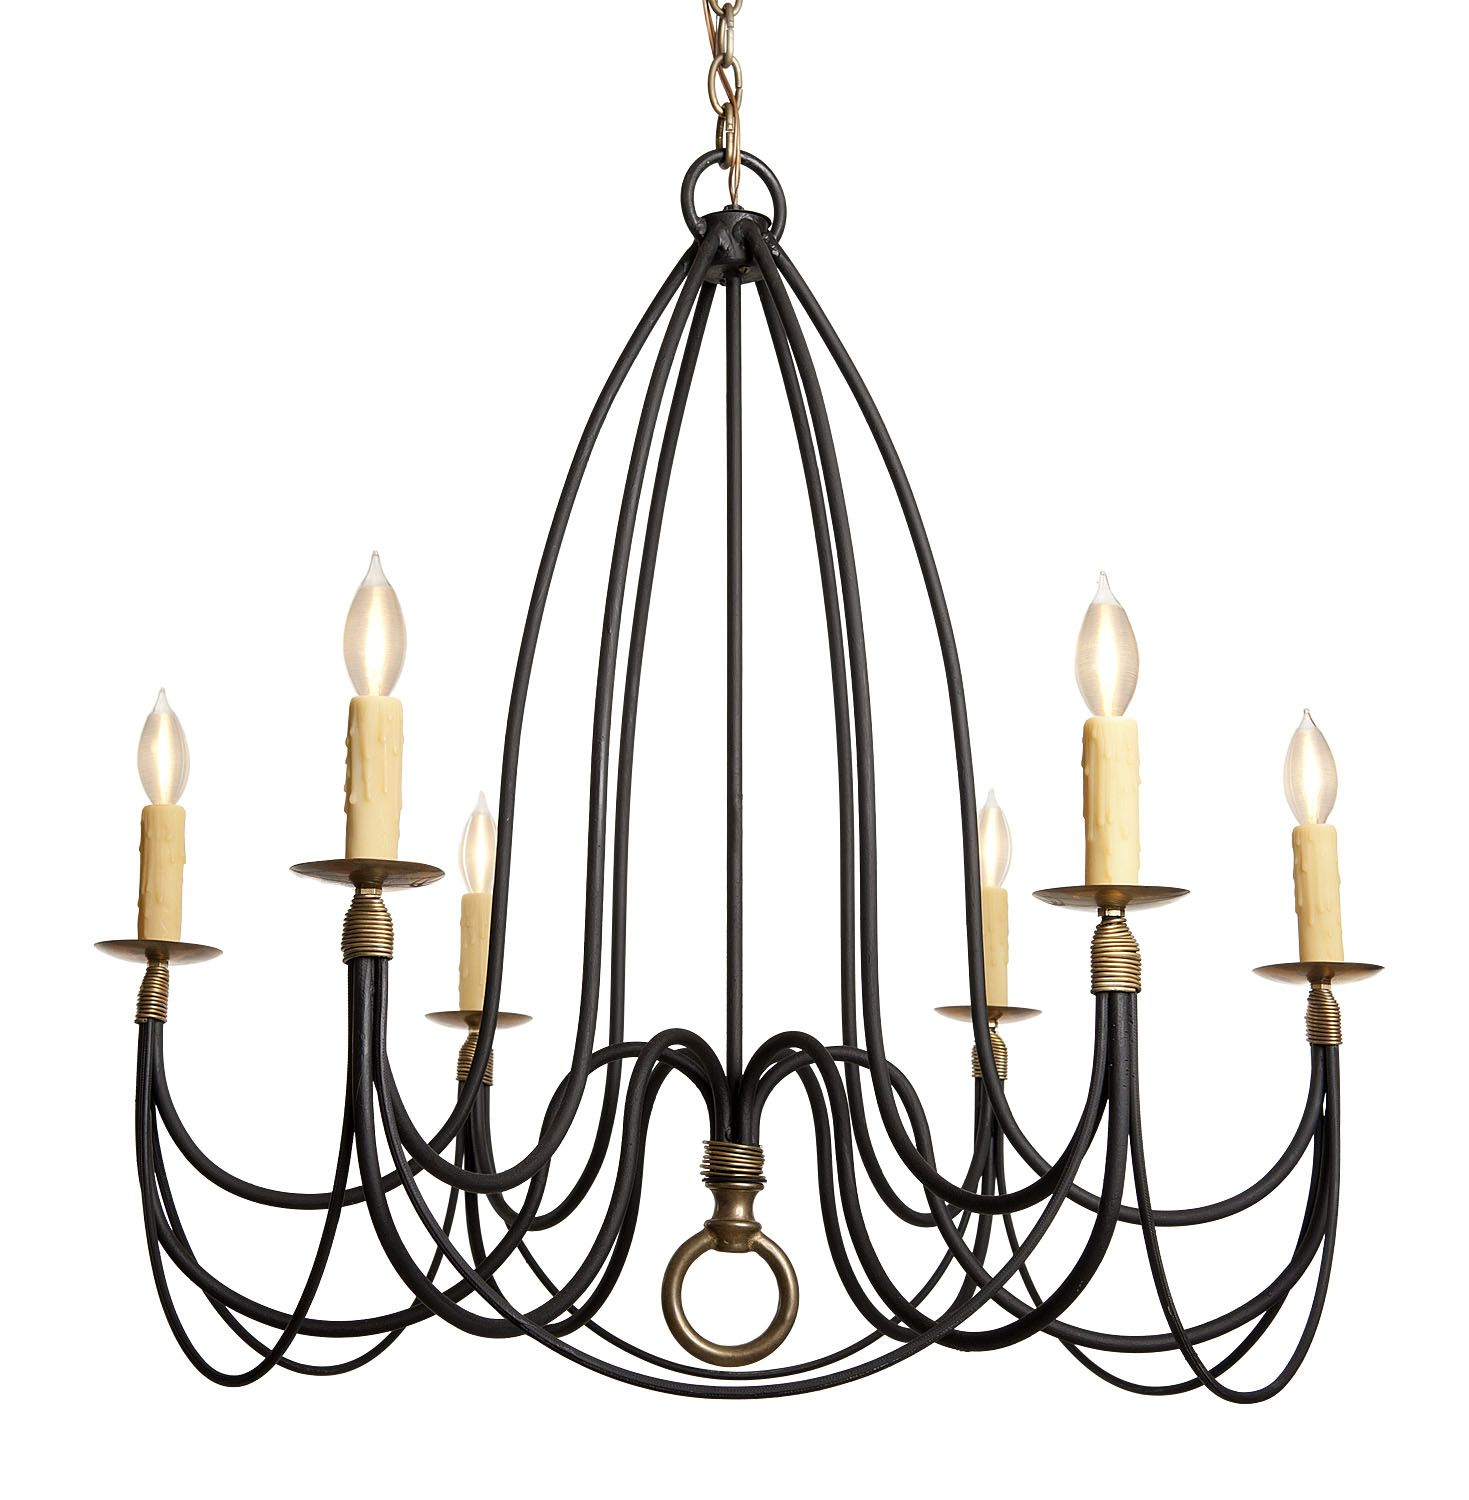 Country French Chandelier Dering Hall